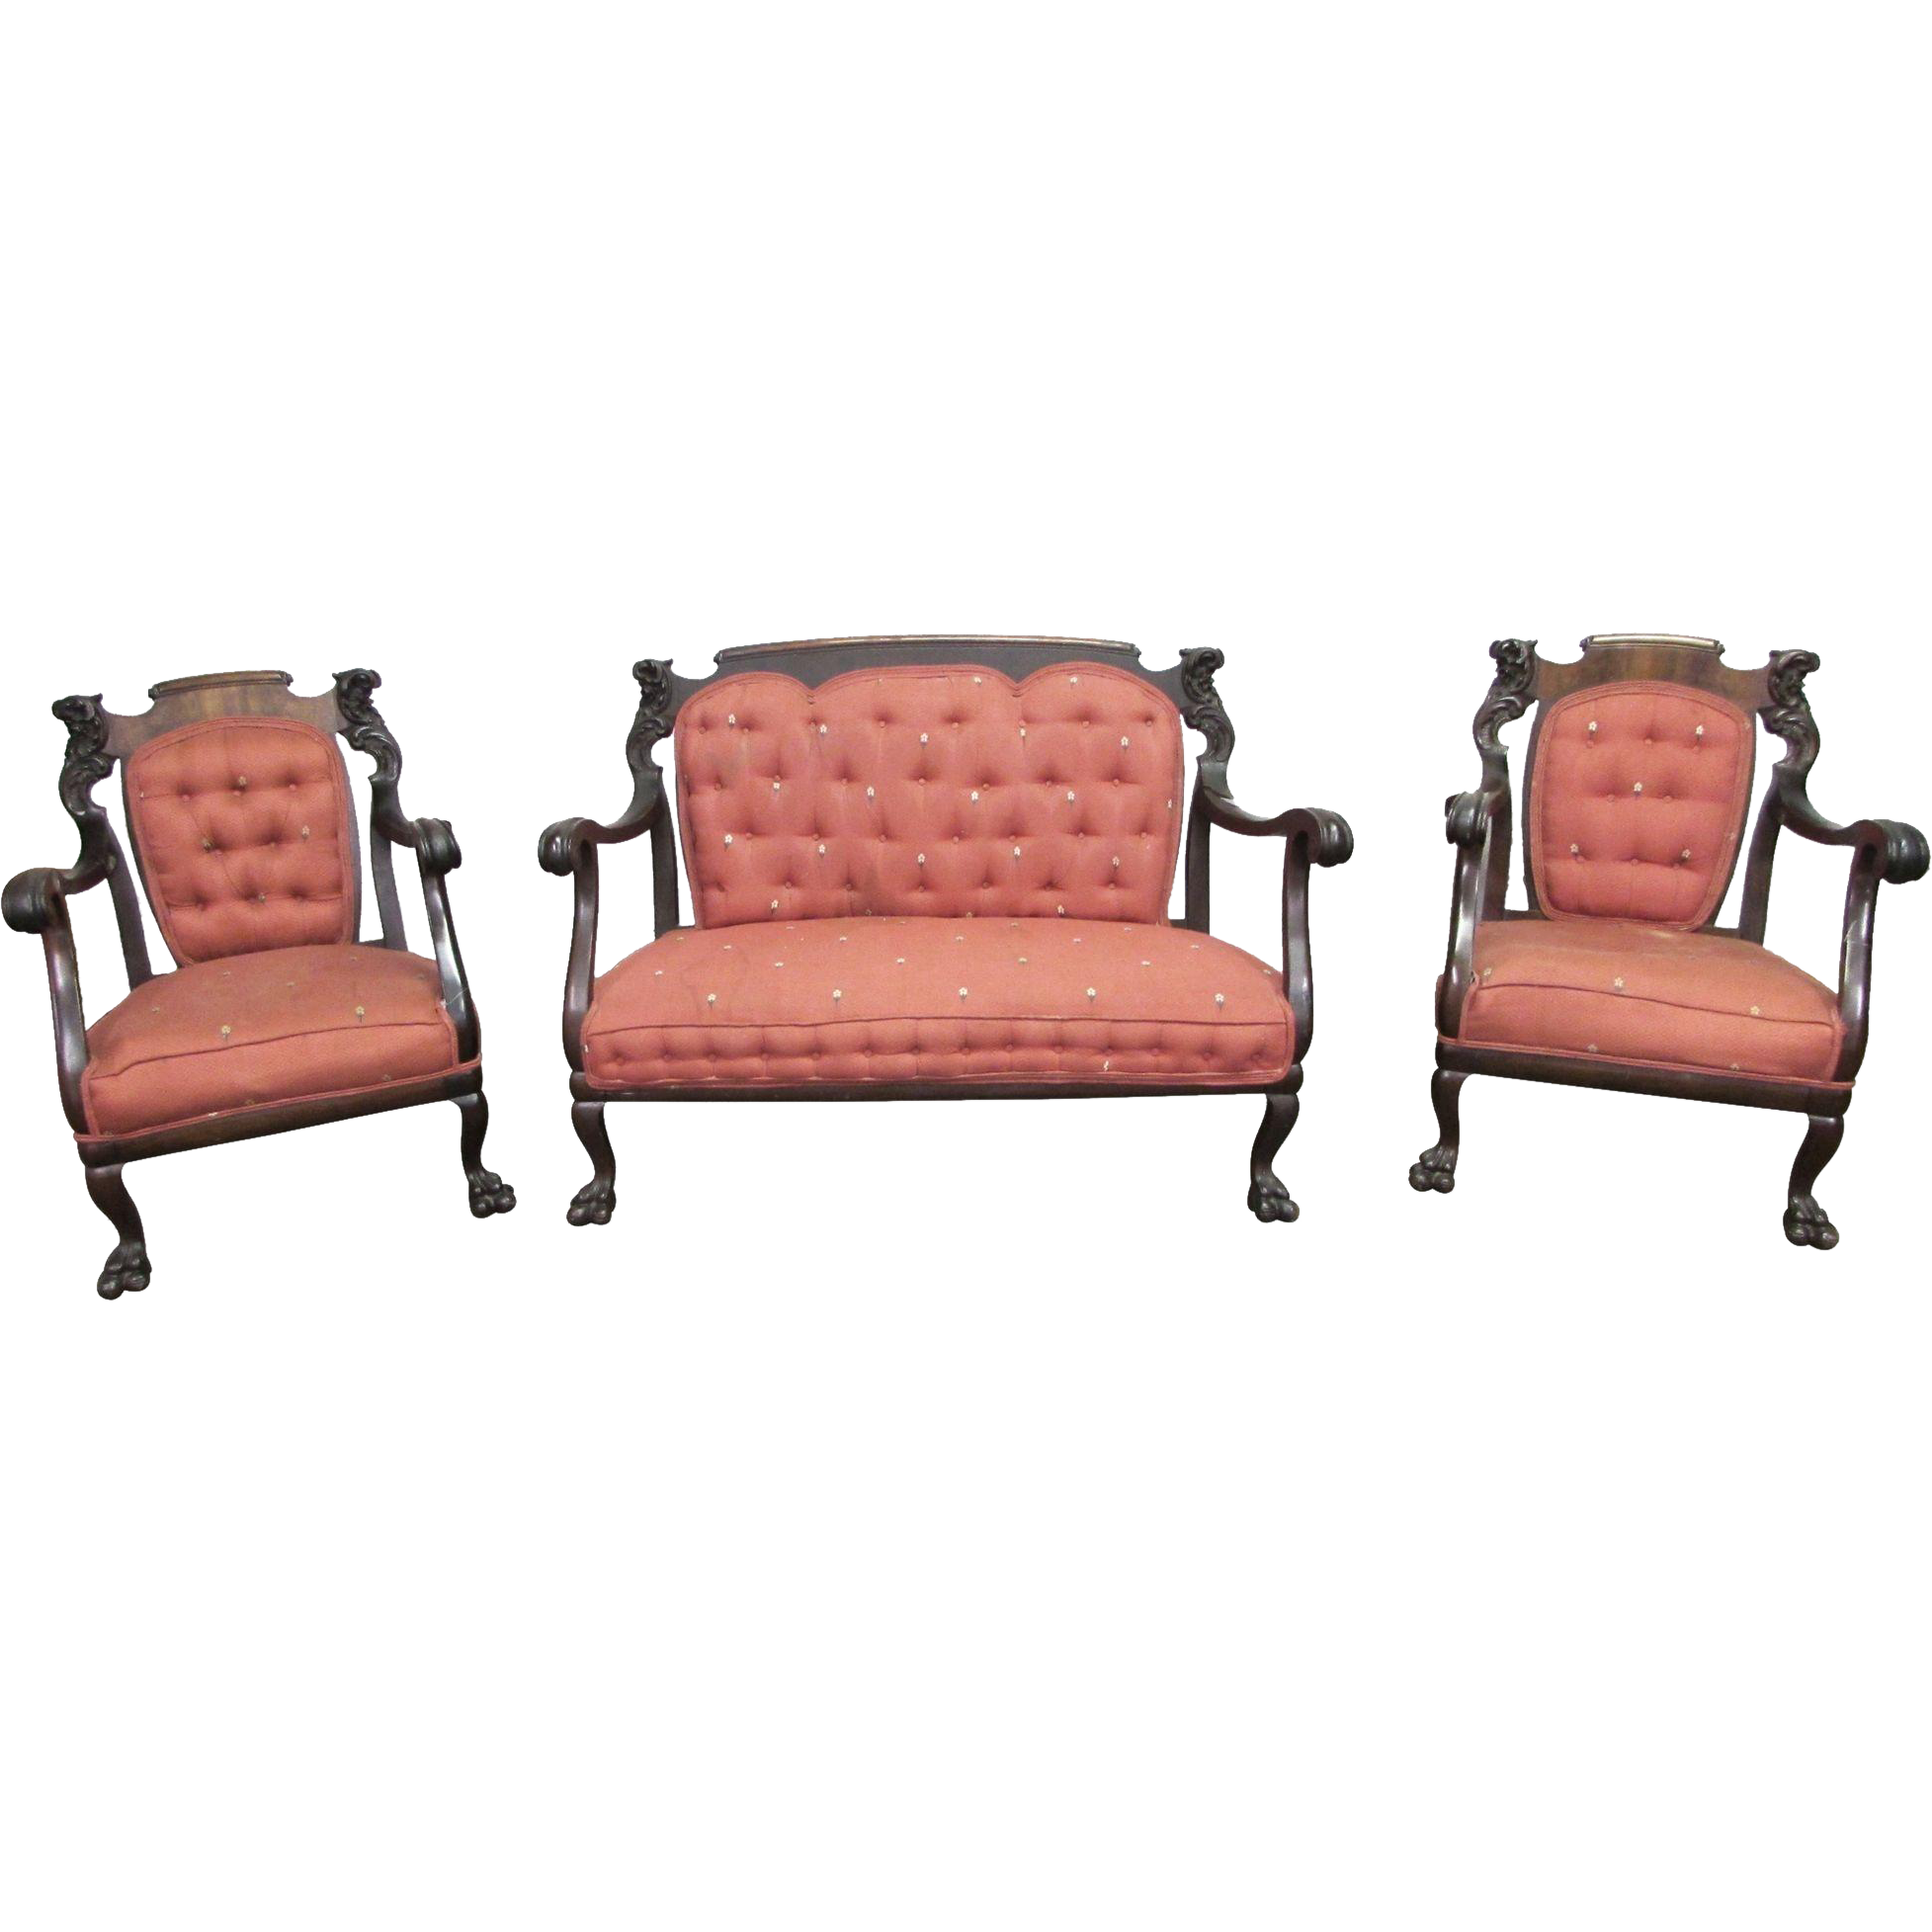 Vintage red mahogany furniture set